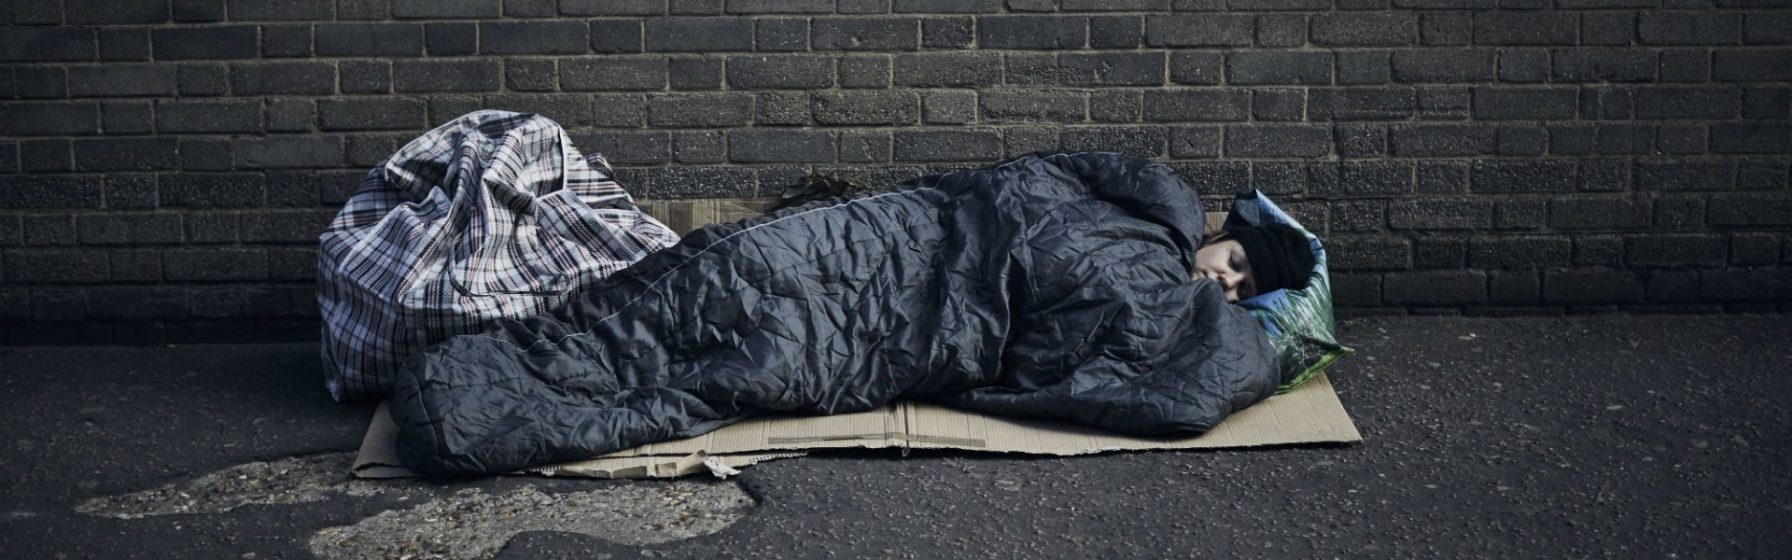 image: person sleeping rough